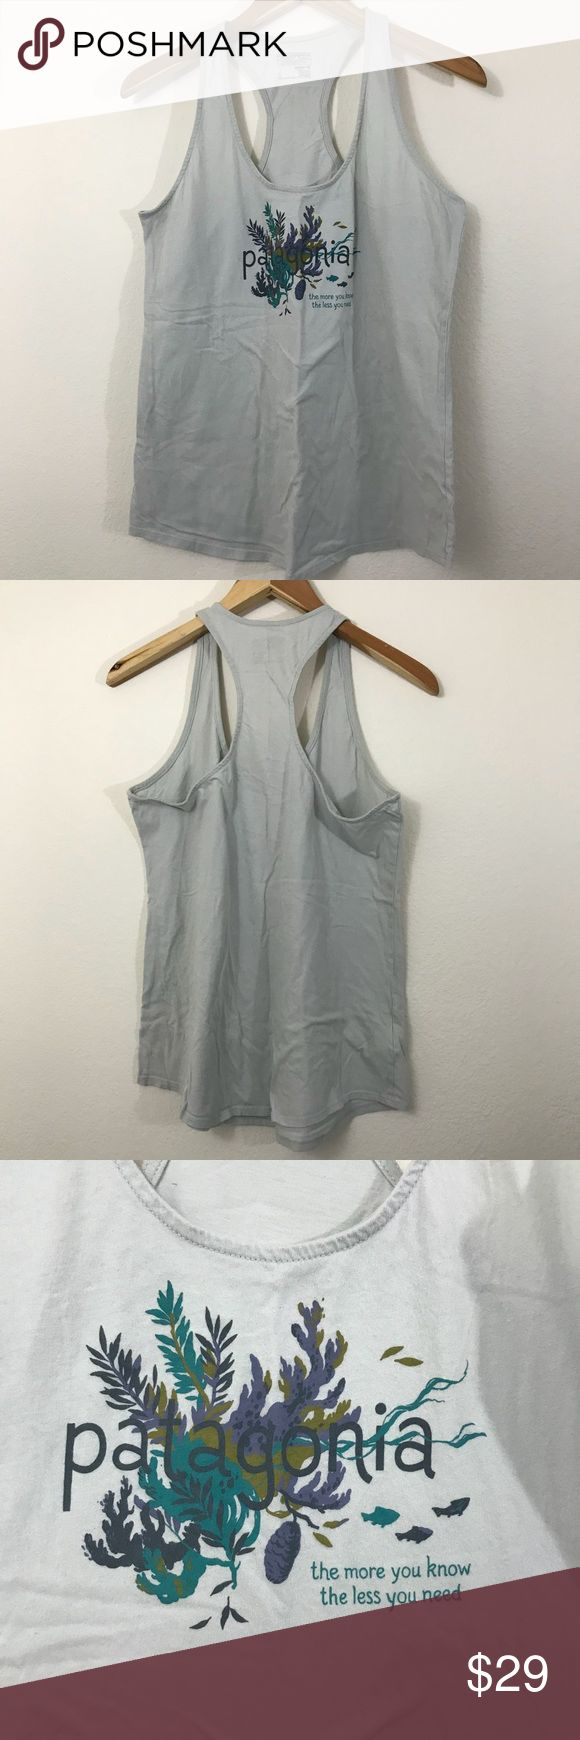 Patagonia Razorback tank top grey large Gently used. No stains or tears. Non smoking home . Patagonia Tops Tank Tops